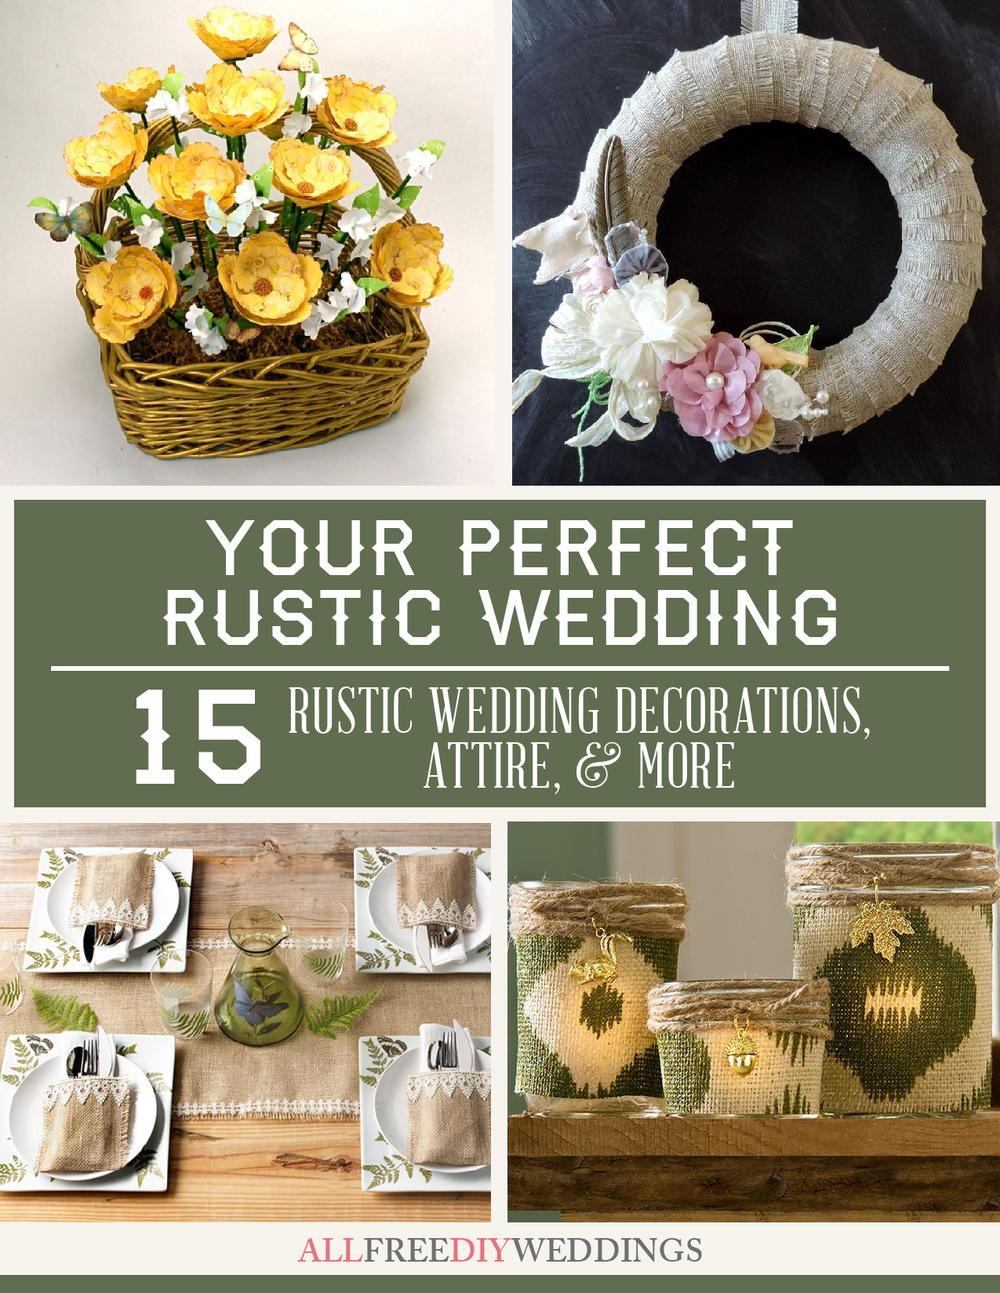 Your perfect rustic wedding 15 rustic wedding decorations for Rustic and more